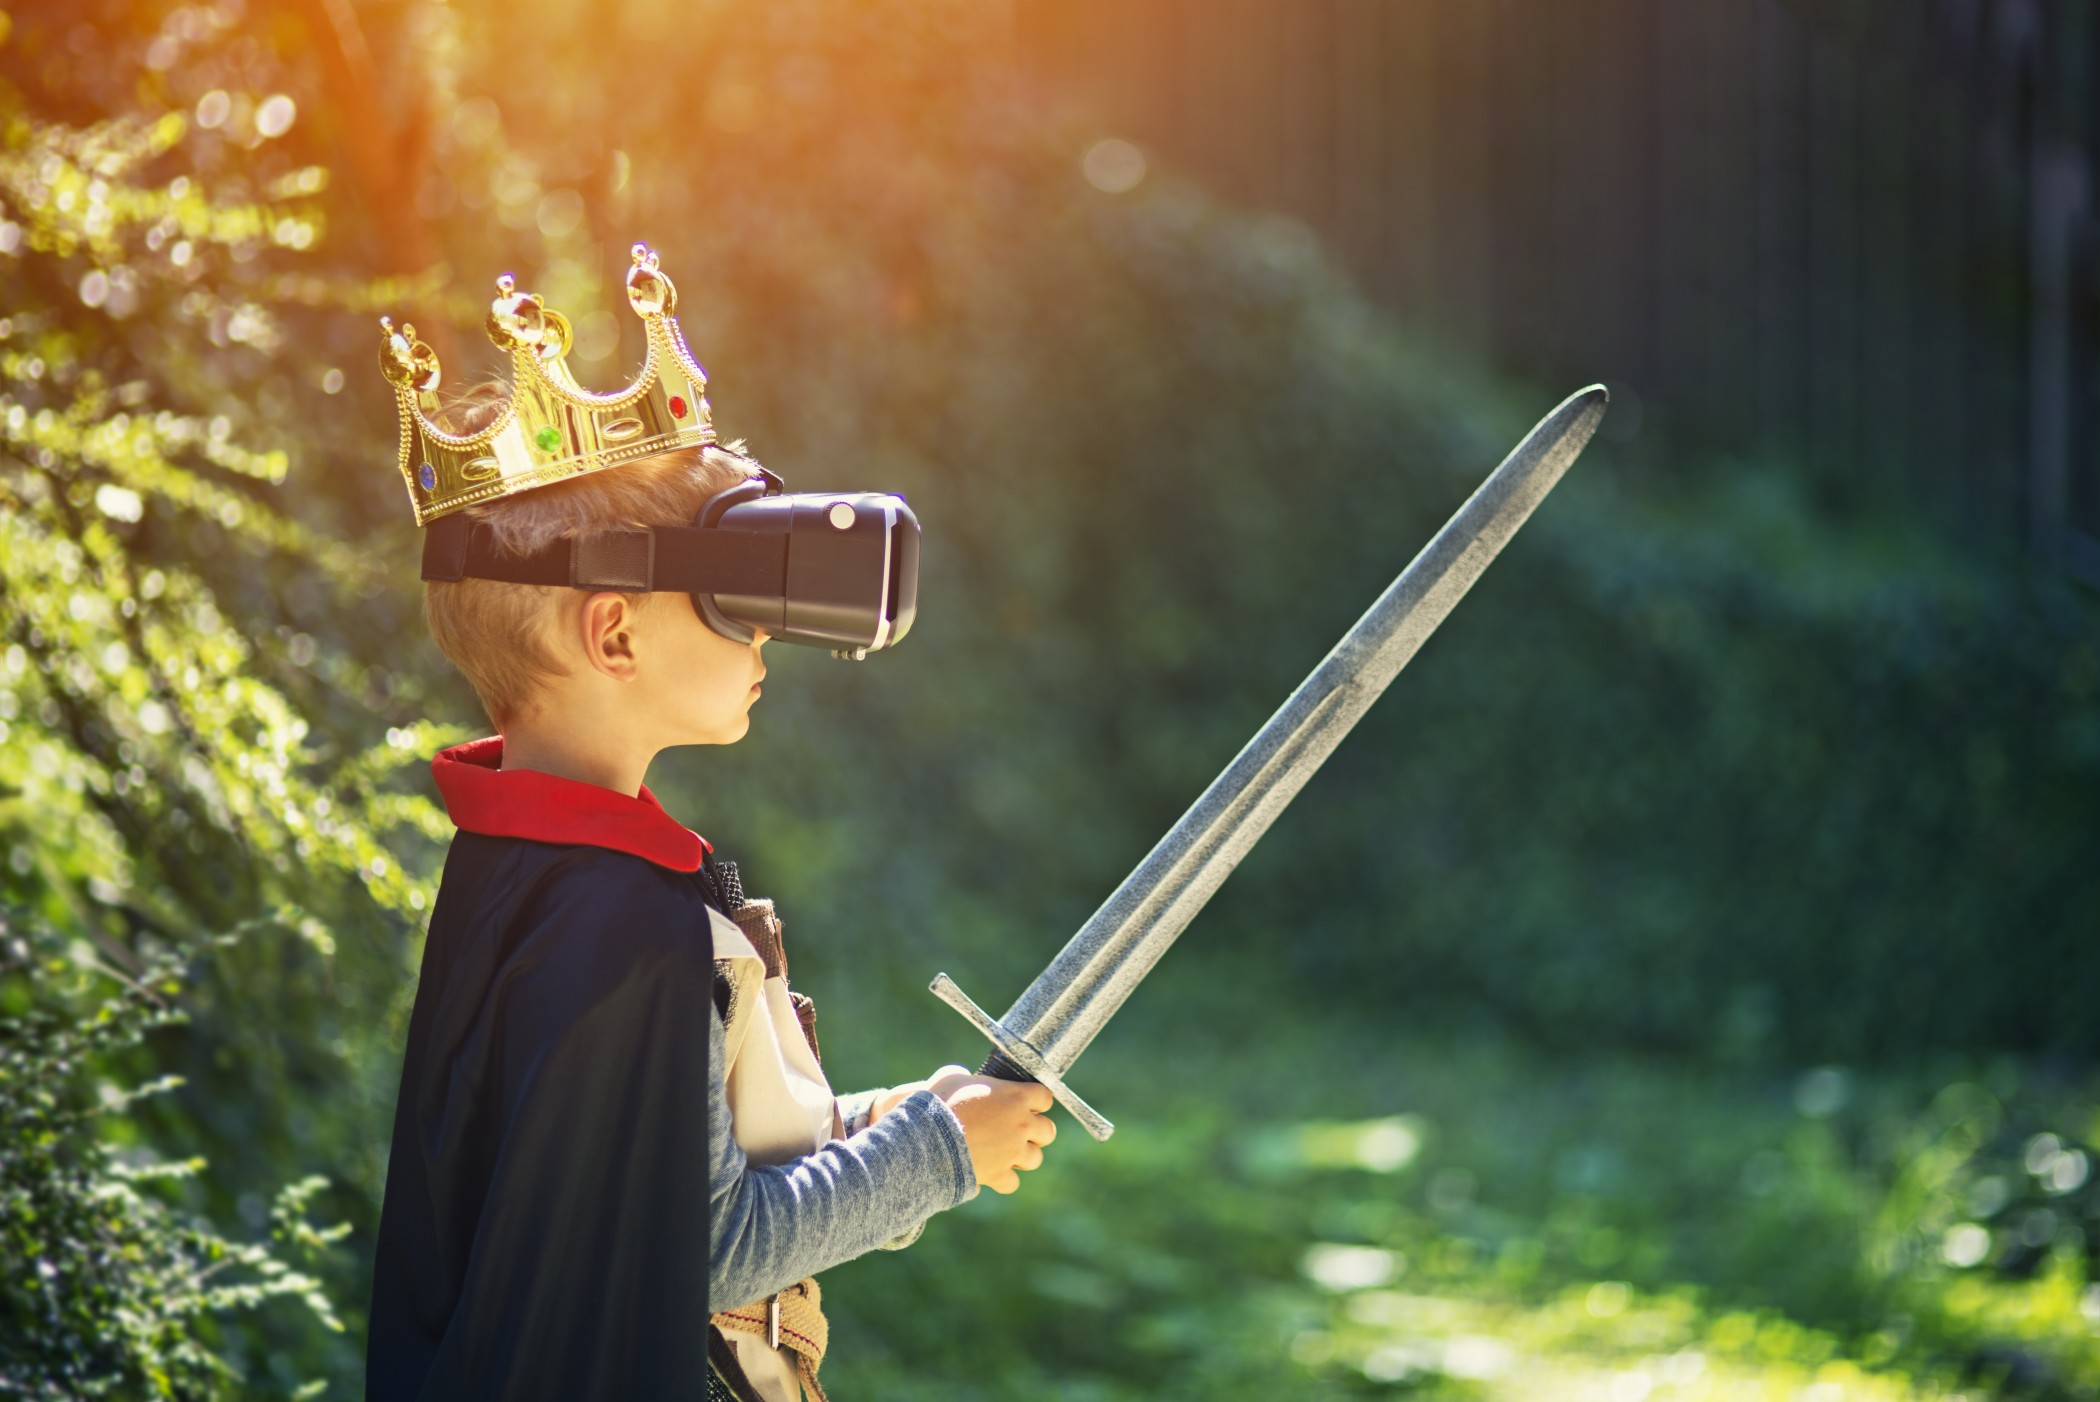 Little boy having fun playing with virtual reality headset. The boy aged 6 is standing outdoors or in cyberspace generated forest. The boy is wearing king's crown and knight outfit and is holding a sword.